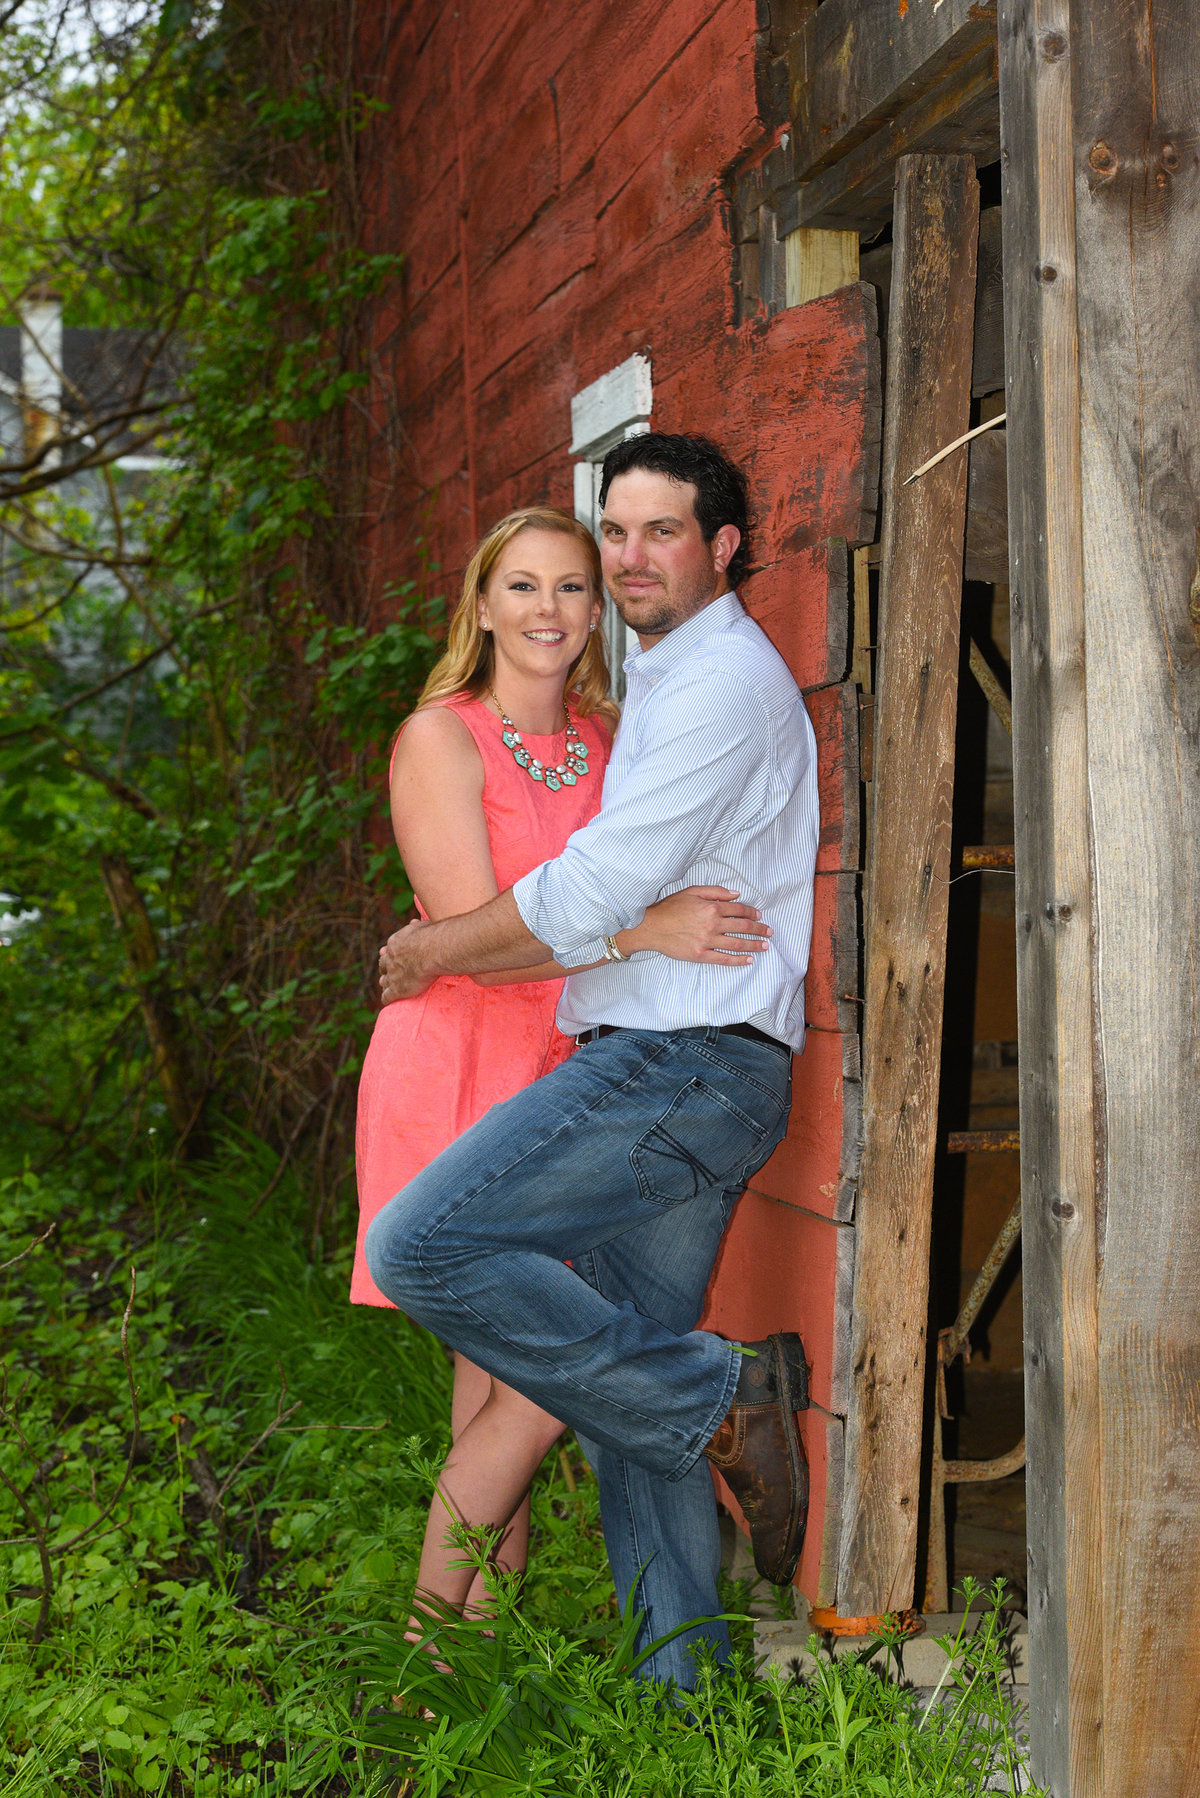 Glenmont, NY, engagement session